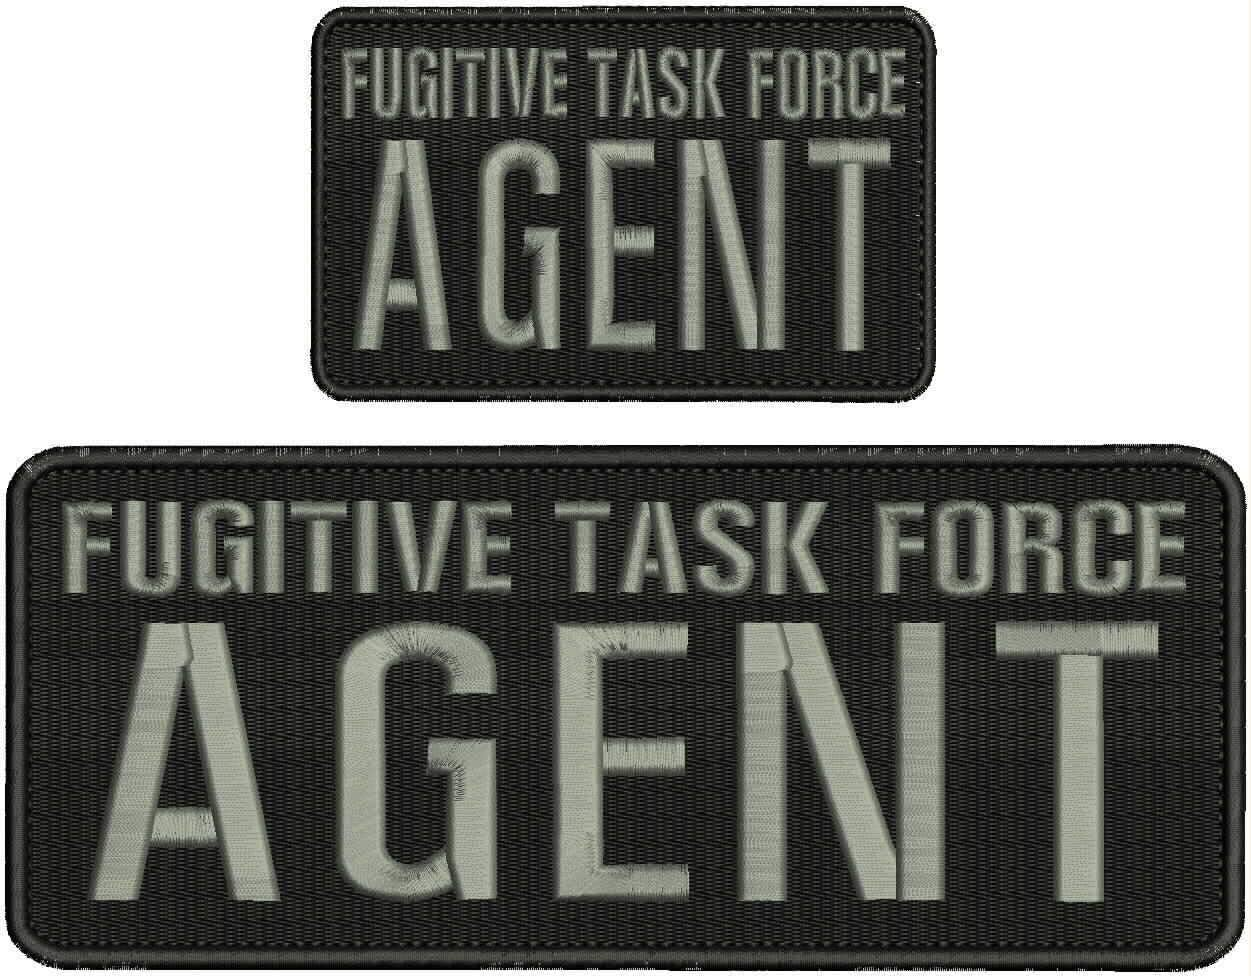 Fugitive Task Force Agent Embroidery Patches 4x10 and 3x8 Hook G